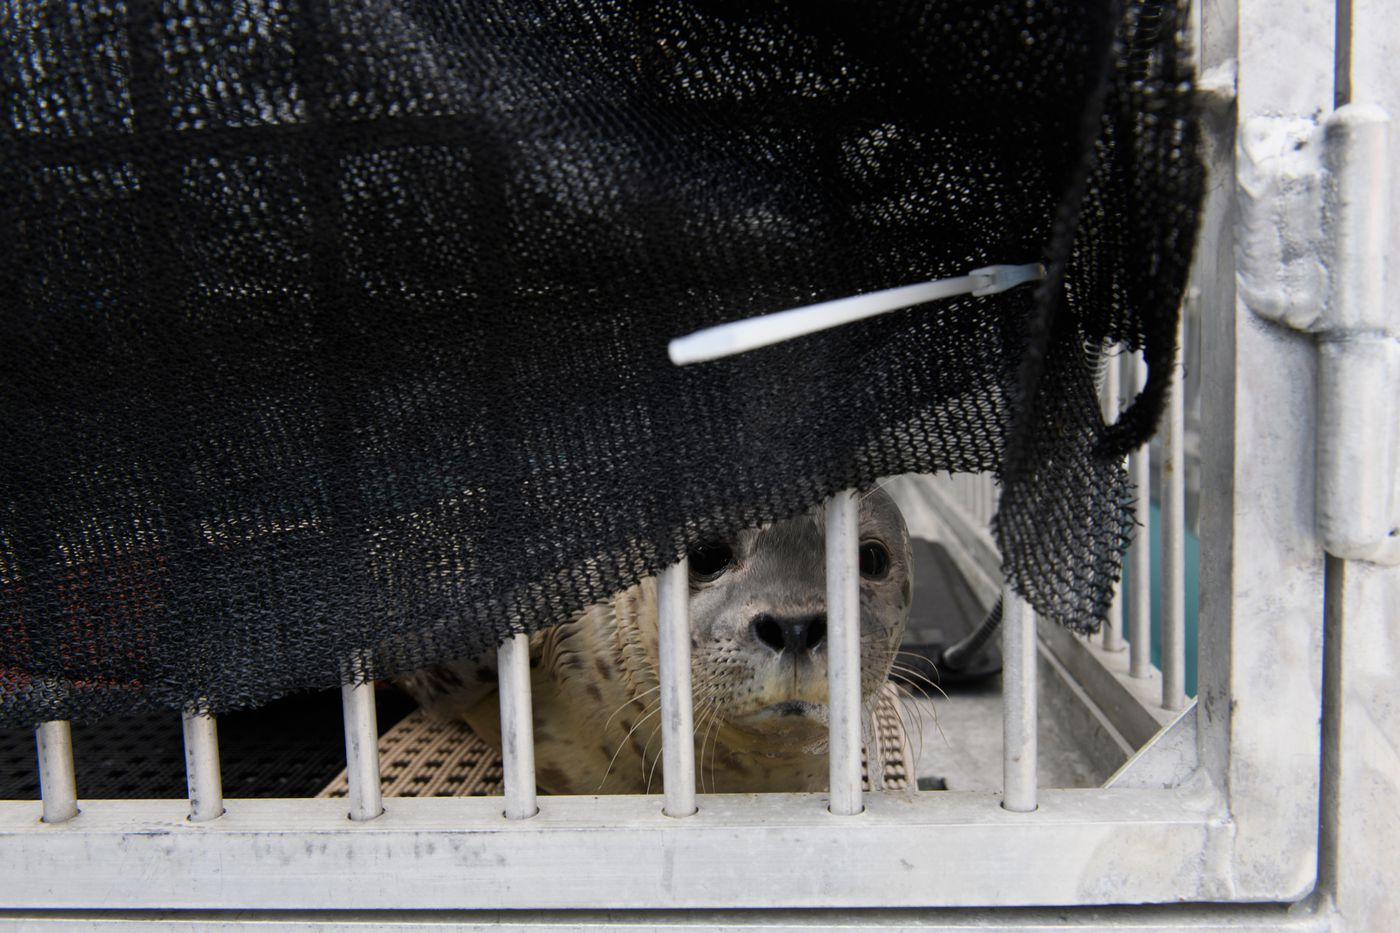 A harbor seal pup recovers at the Alaska SeaLife Center on July 6, 2020. The SeaLife Center's Wildlife Response program, the only marine mammal rehabilitation program in Alaska, cared for 6 harbor seal pups in early July. Activities pictured authorized by permit NOAA SA-AKR-2019-01. (Marc Lester / ADN)